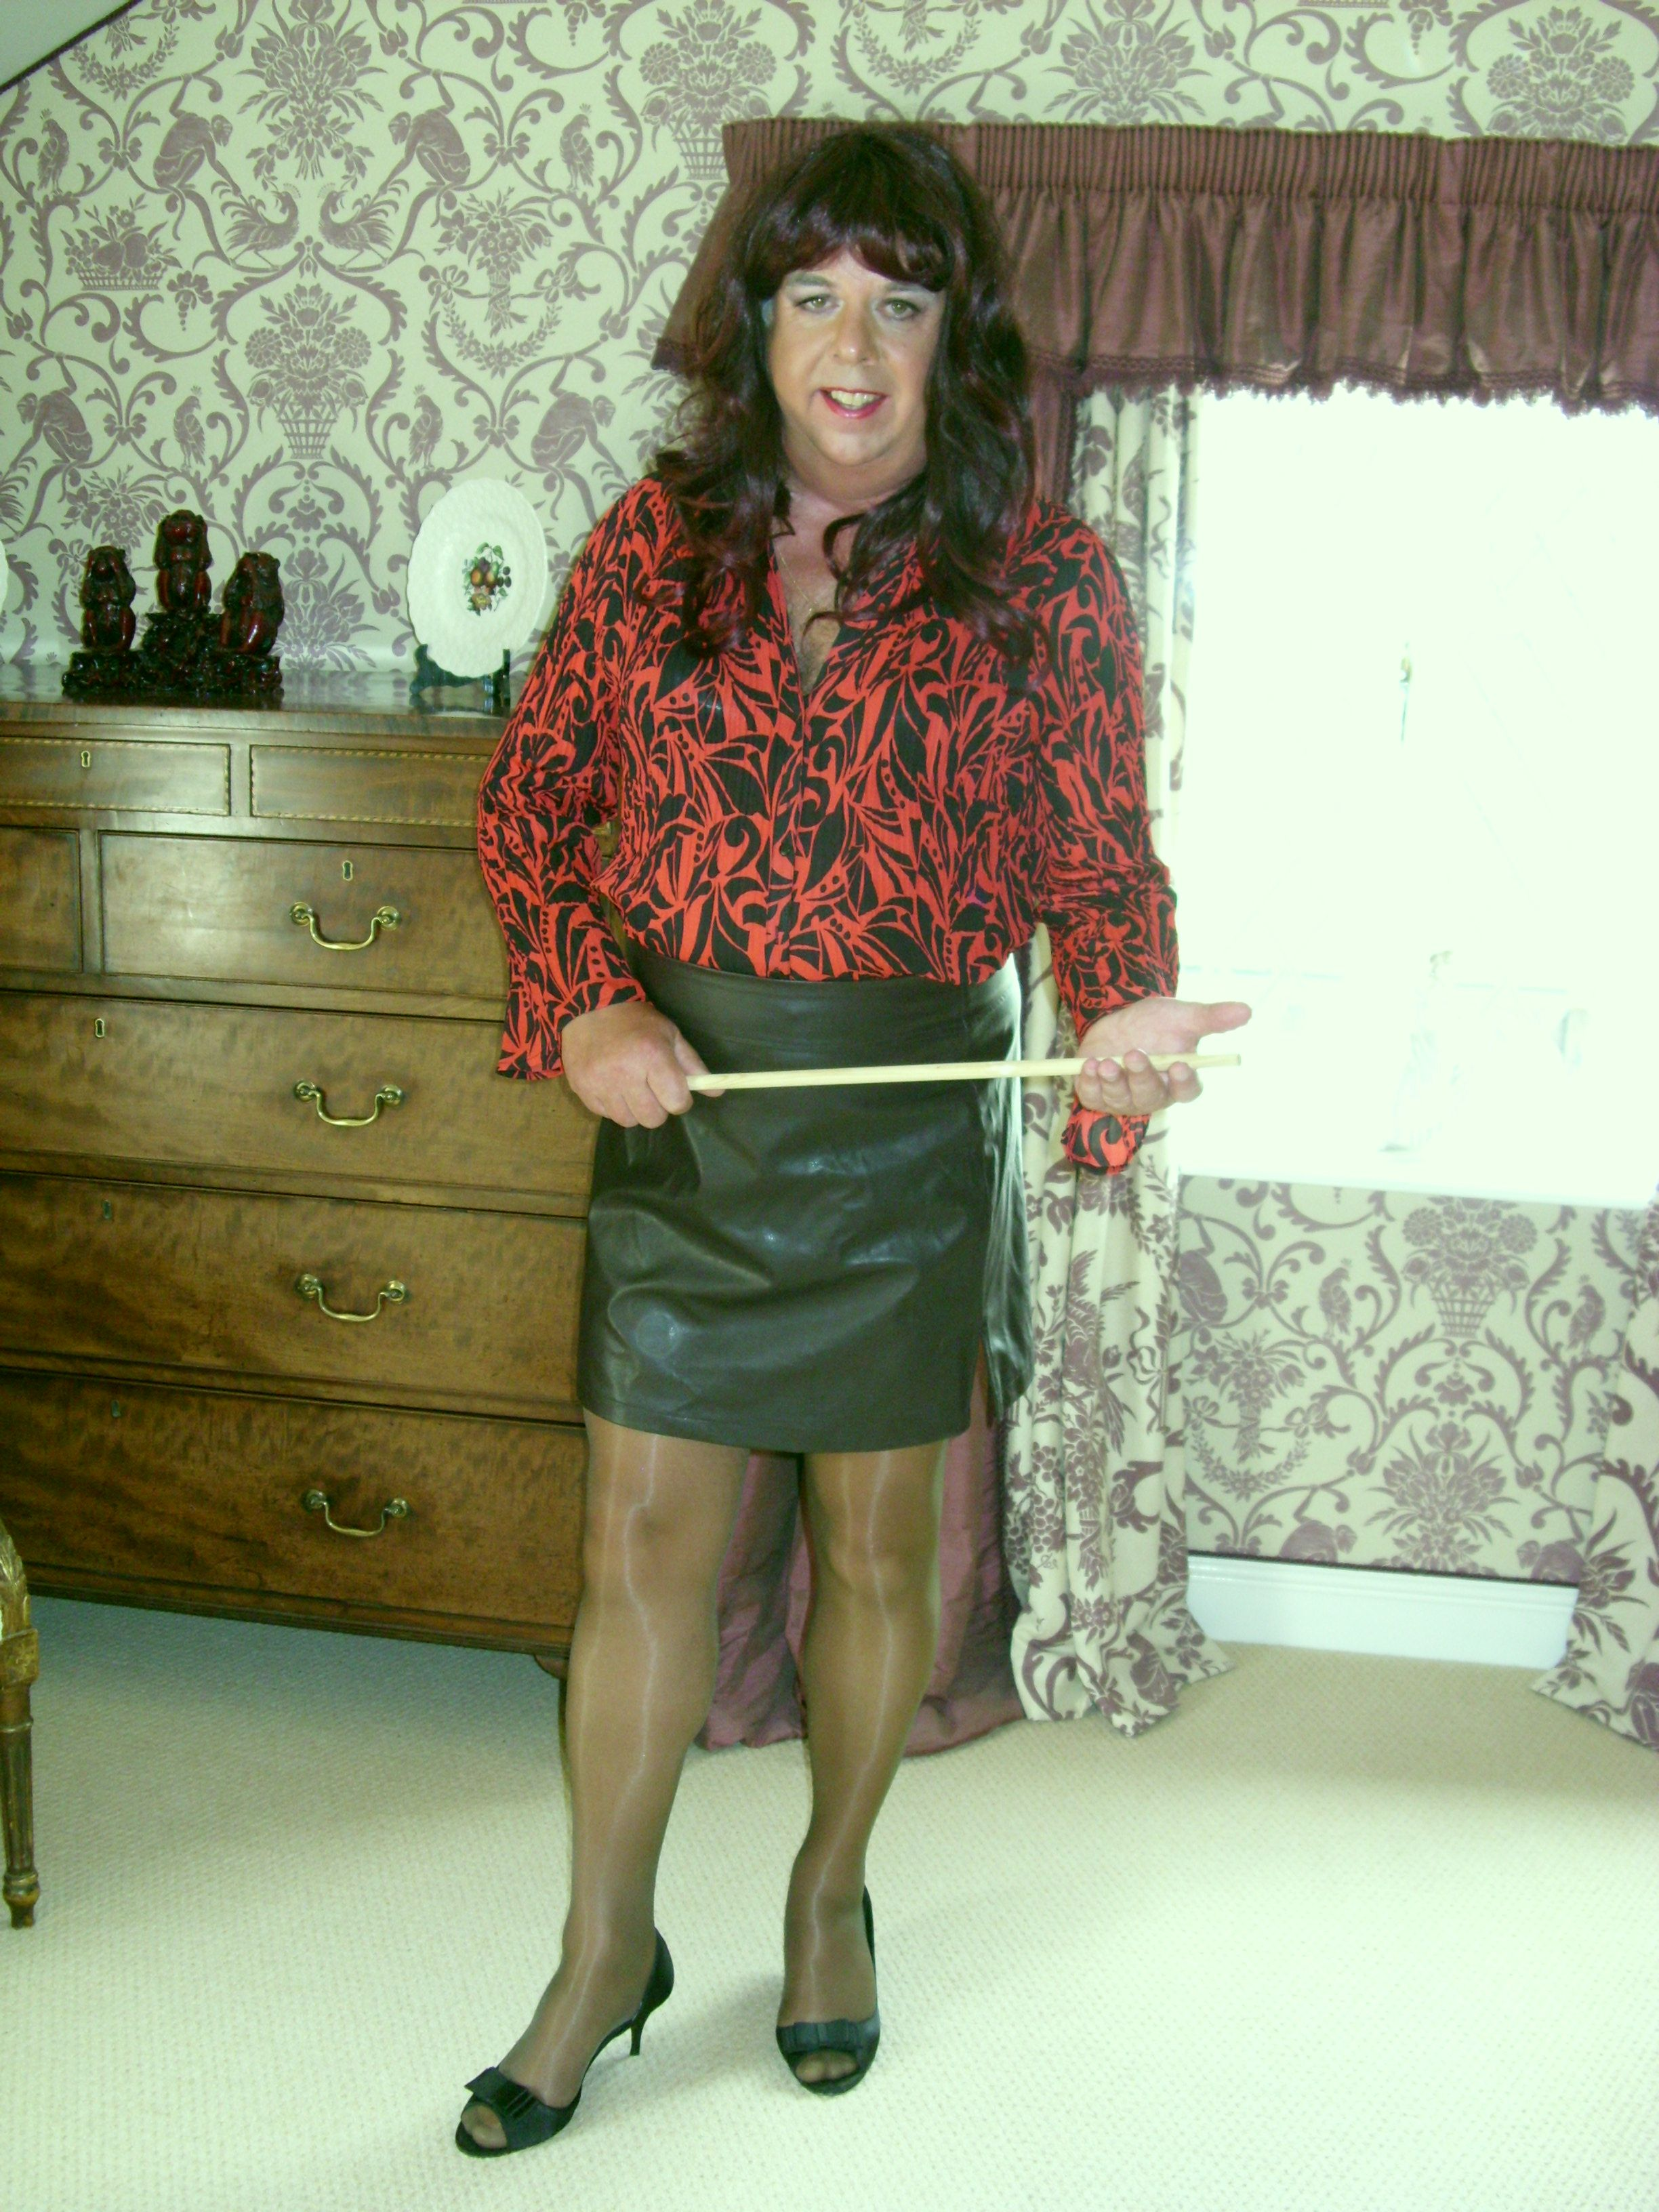 pindis on crossdressers wearing platino cleancut pantyhose